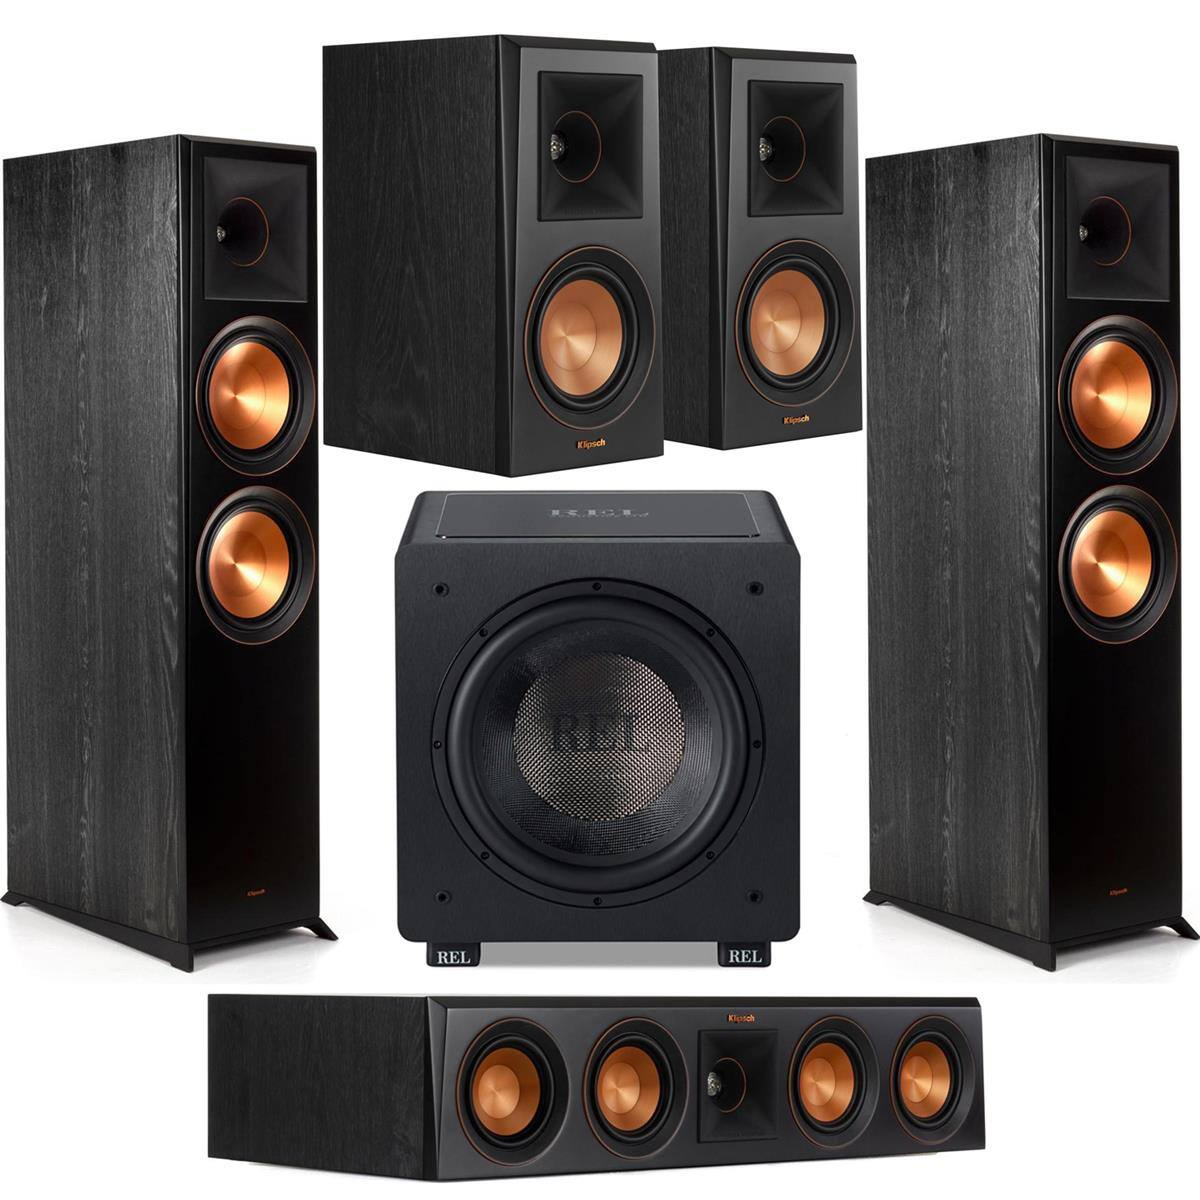 Klipsch Reference Premiere Speakers: 2x RP-8000F + 2x RP-500M + RP-404C + Rel HT/1205 Sub $1599 + free s/h at Adorama